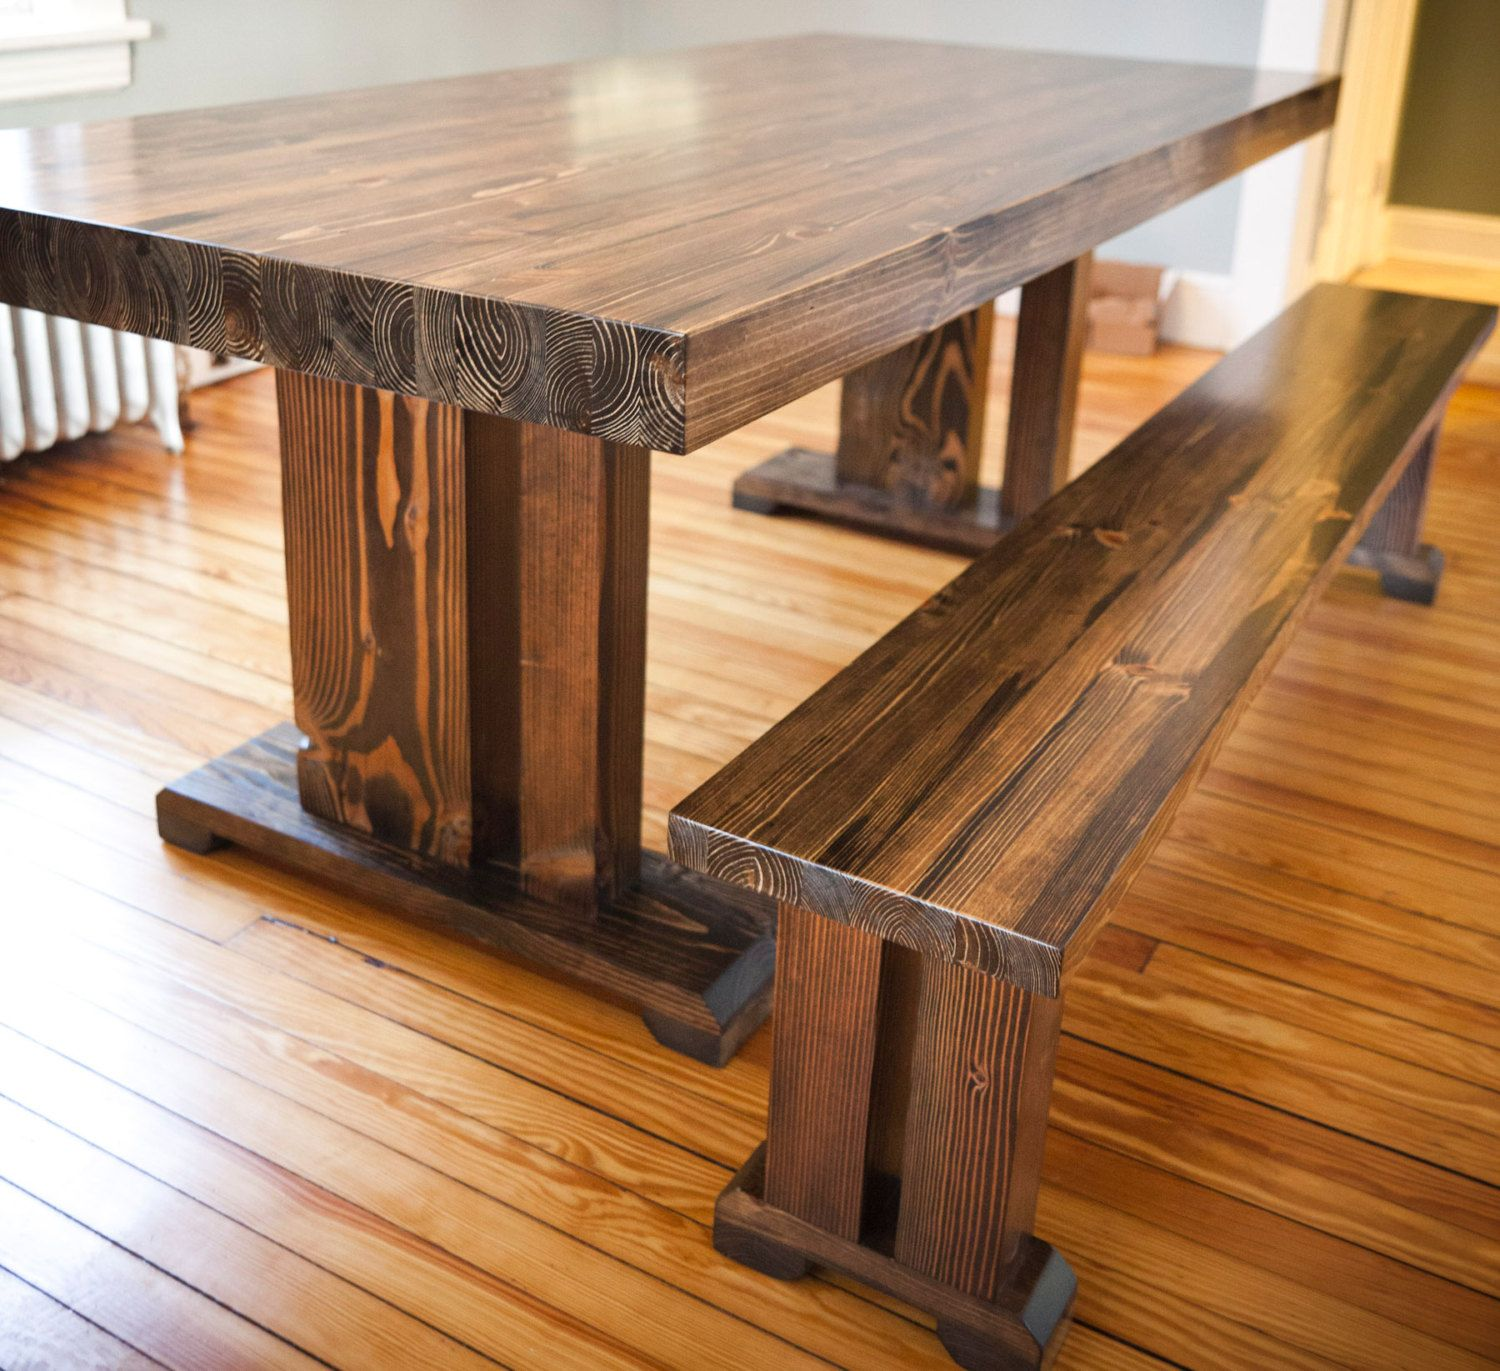 Butcher Block Table   Solid Wood Farmhouse Dining Table   Conference Table    Trestle Table Base   Pedestal Table. Butcher Block Table   Solid Wood Farmhouse Dining Table